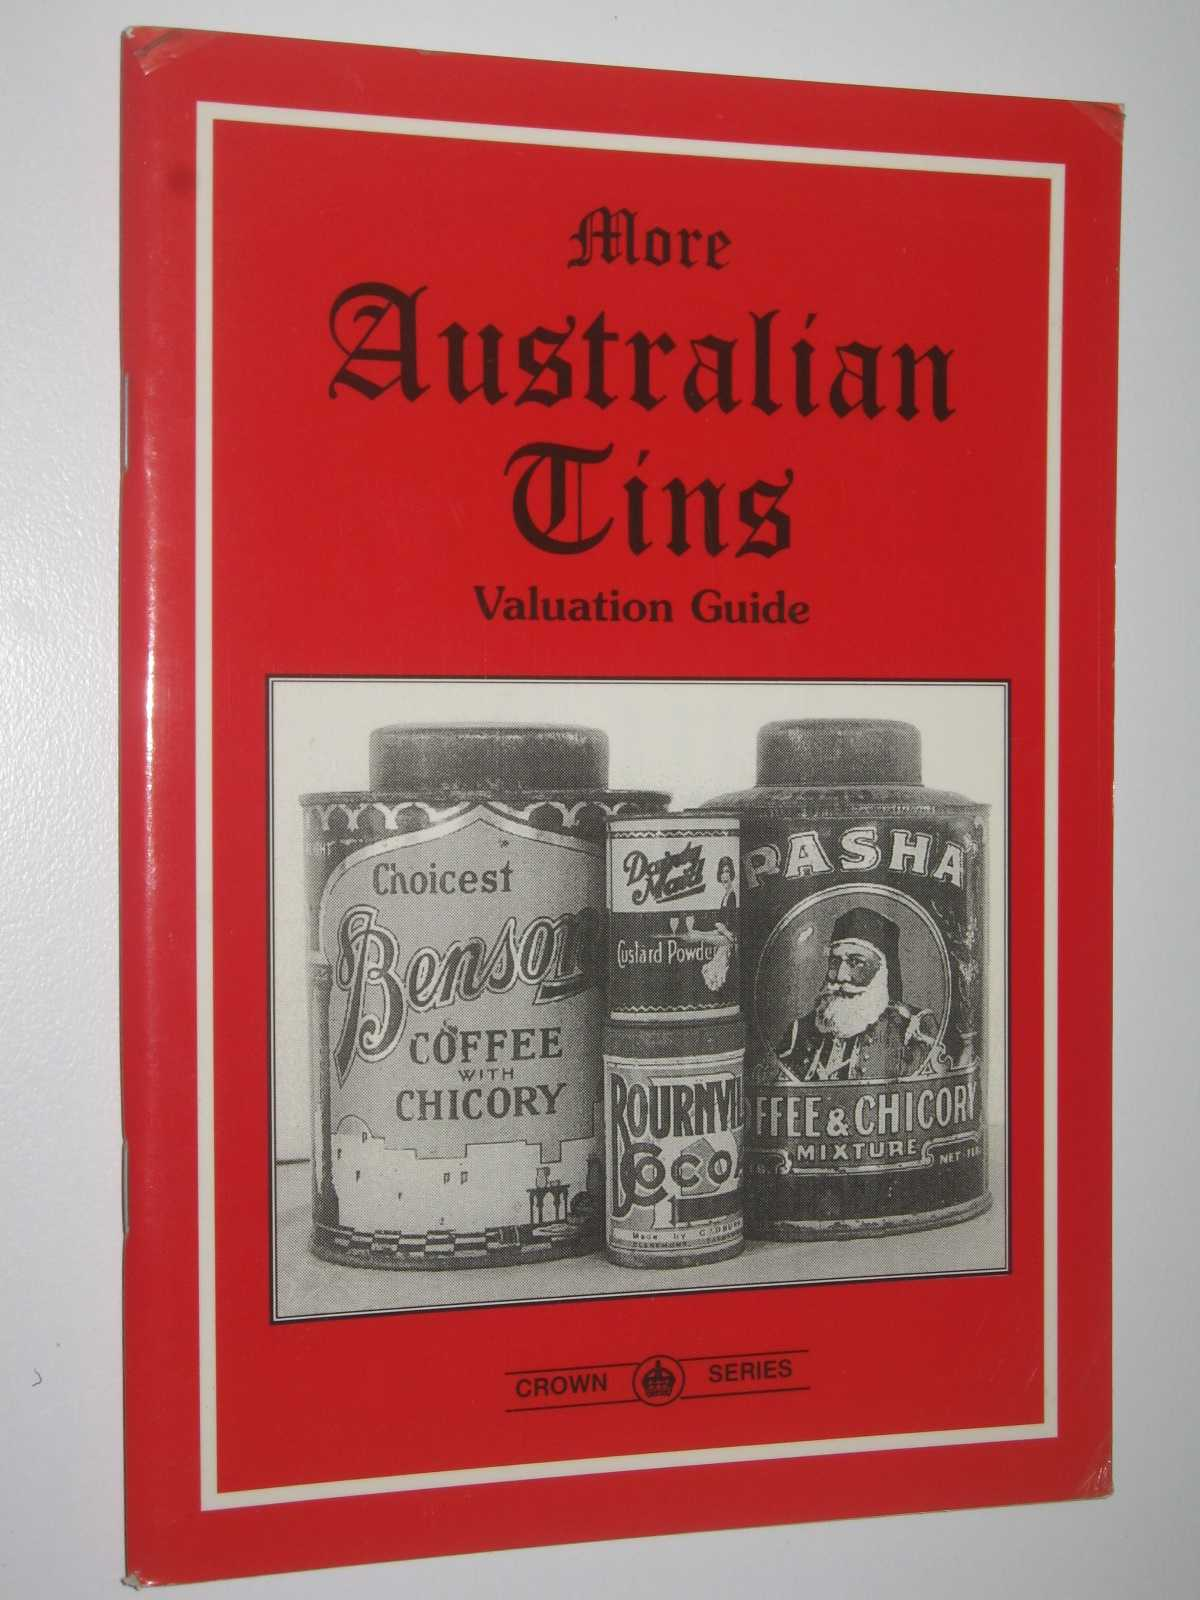 More Australian Tins: Valuation Guide, Taylor, Jean